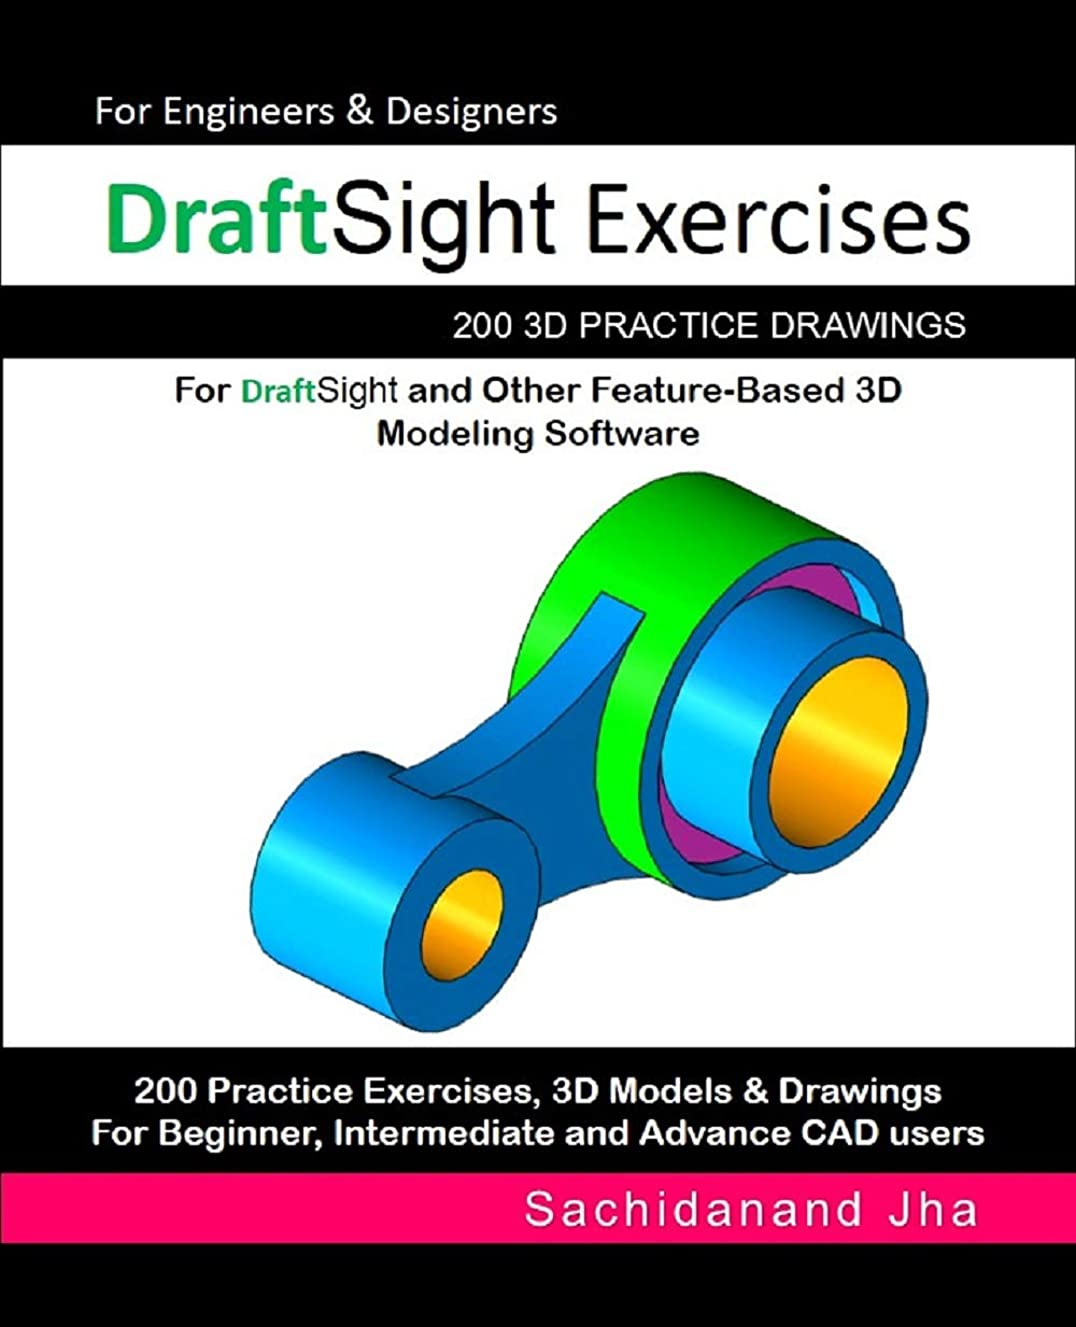 ジャベスウィルソン打ち上げる積極的にDraftSight Exercises: 200 3D Practice Drawings For DraftSight and Other Feature-Based 3D Modeling Software (English Edition)